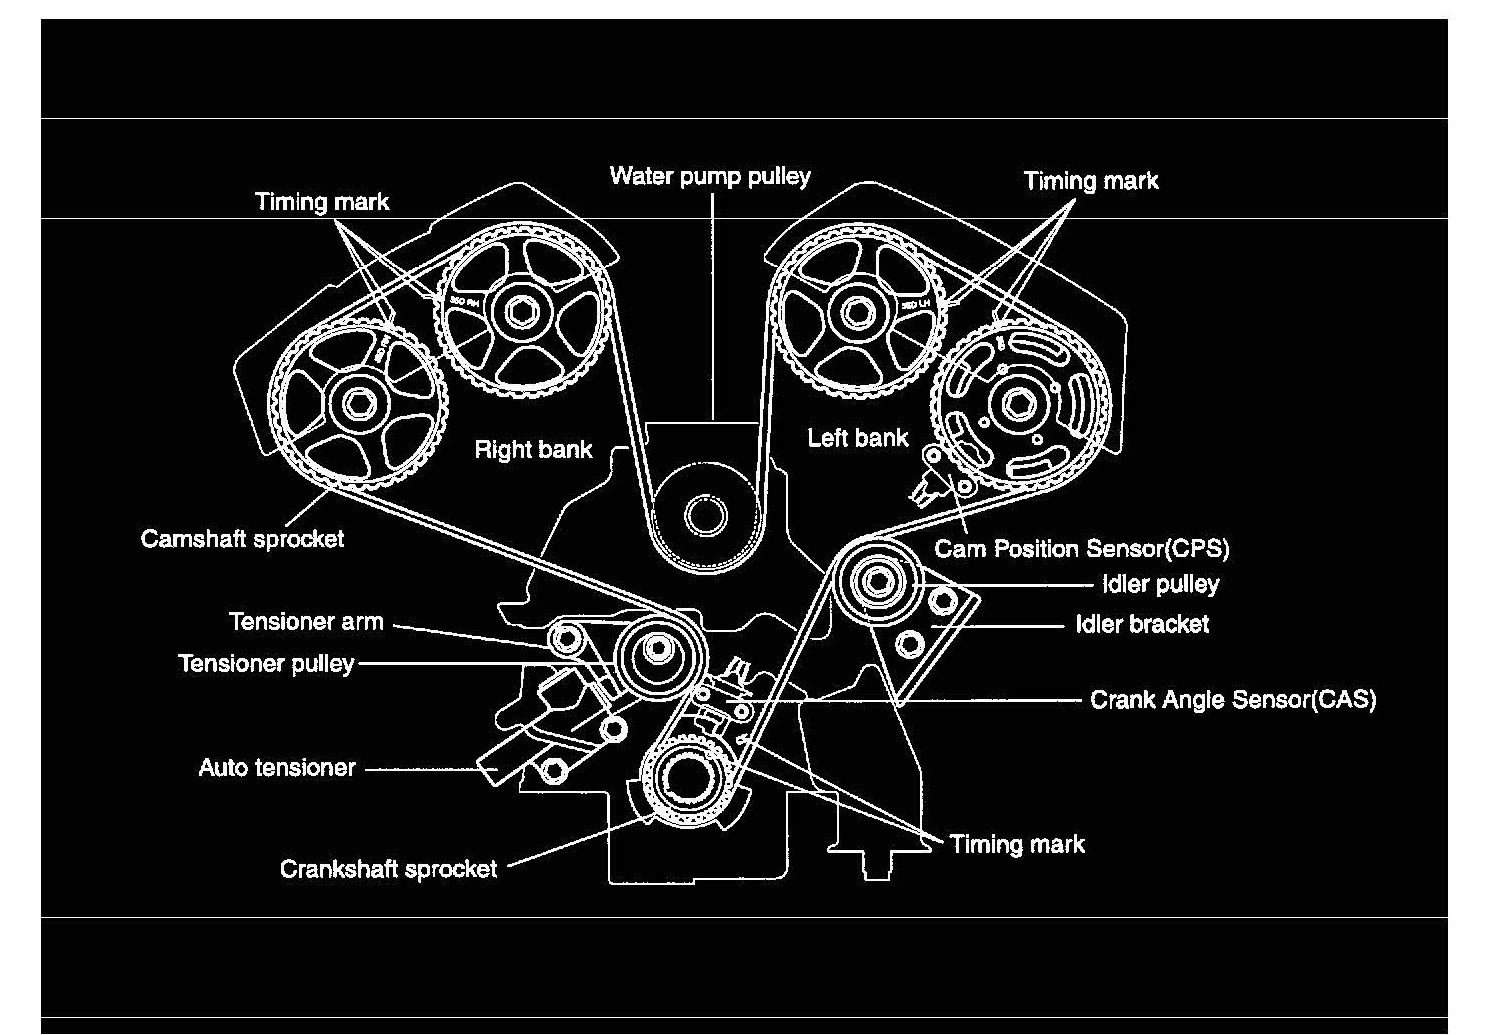 2005 Sorento Crank Sensor Wiring Diagram Will Be A Kia Color I Need Schematic Illustration Print Out For Rh Justanswer Com